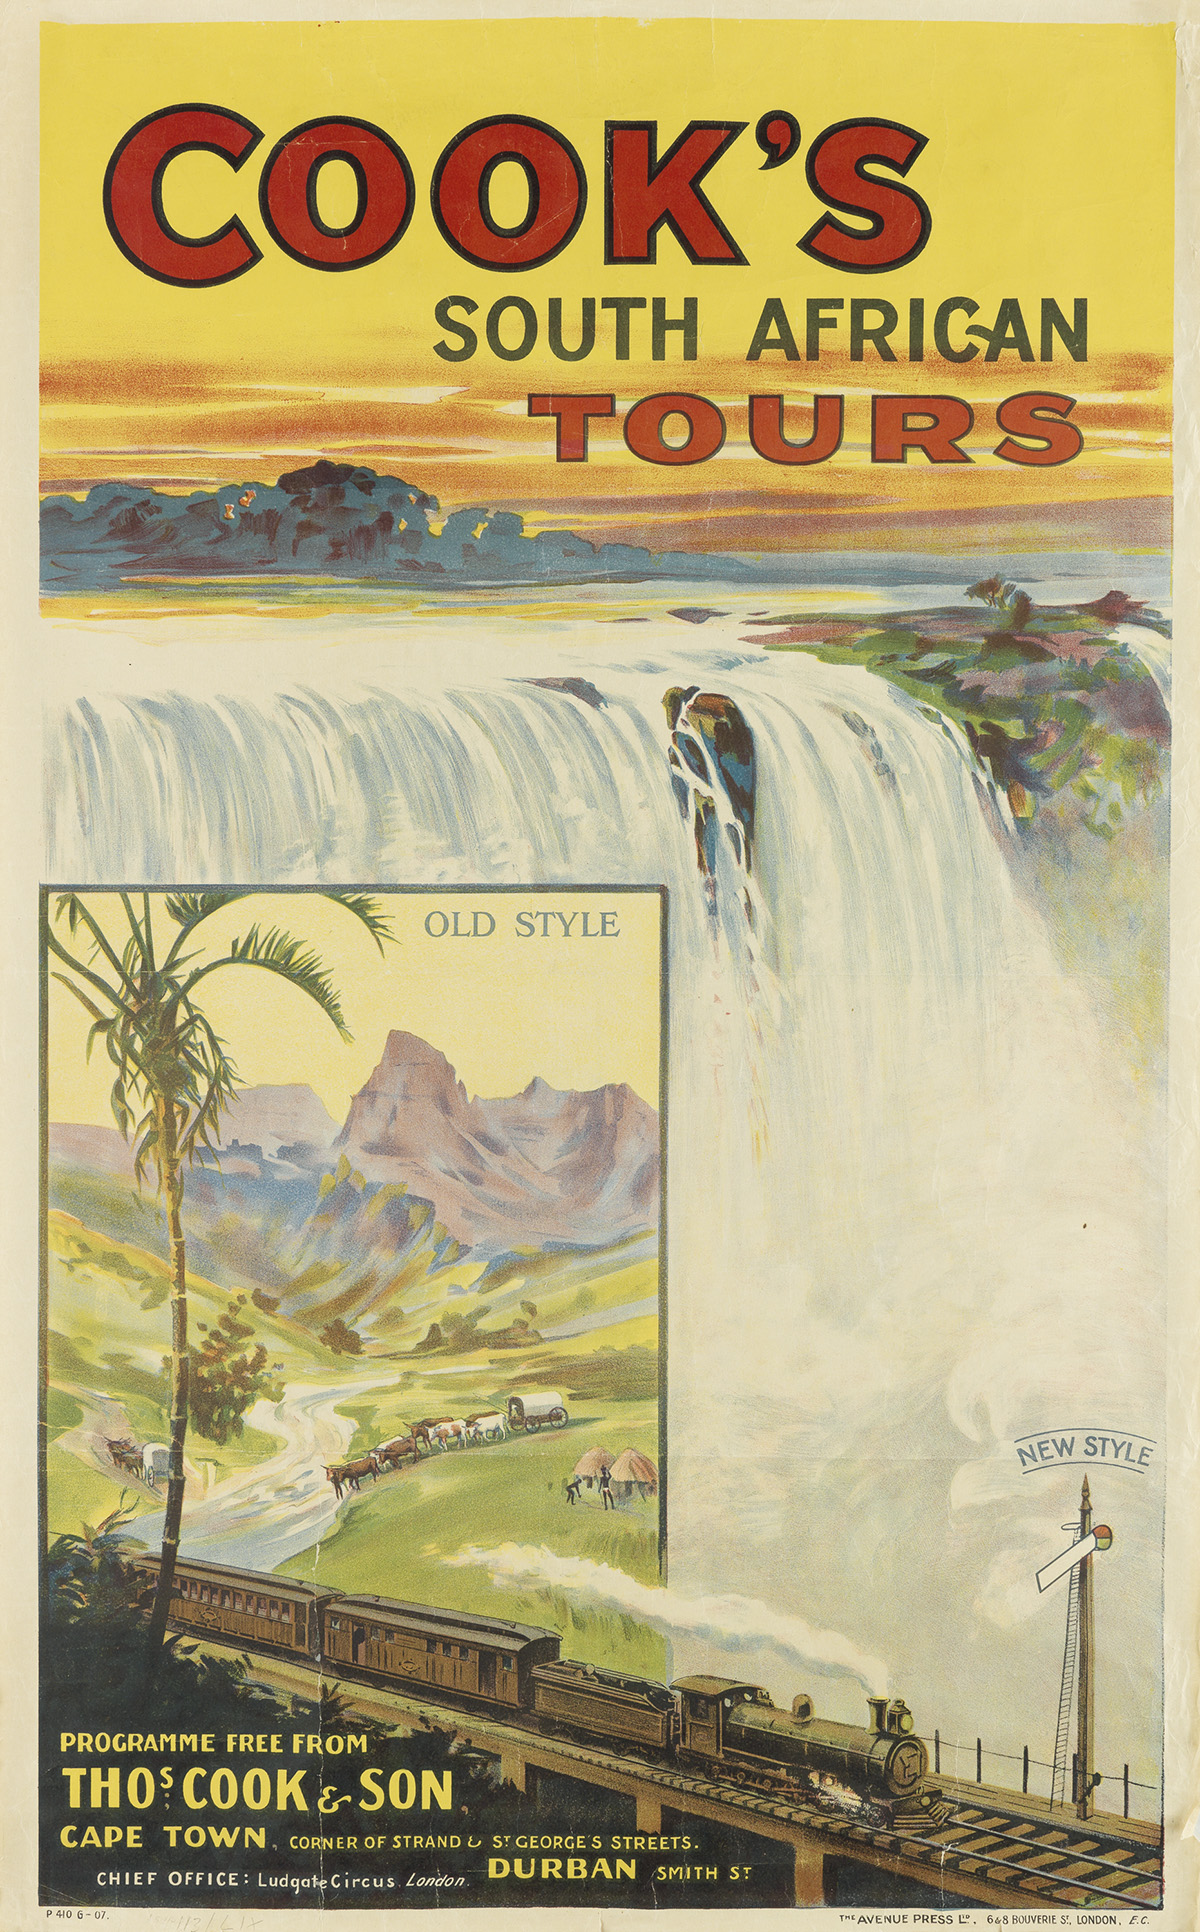 DESIGNER-UNKNOWN-COOKS-SOUTH-AFRICAN-TOURS-1907-40x25-inches